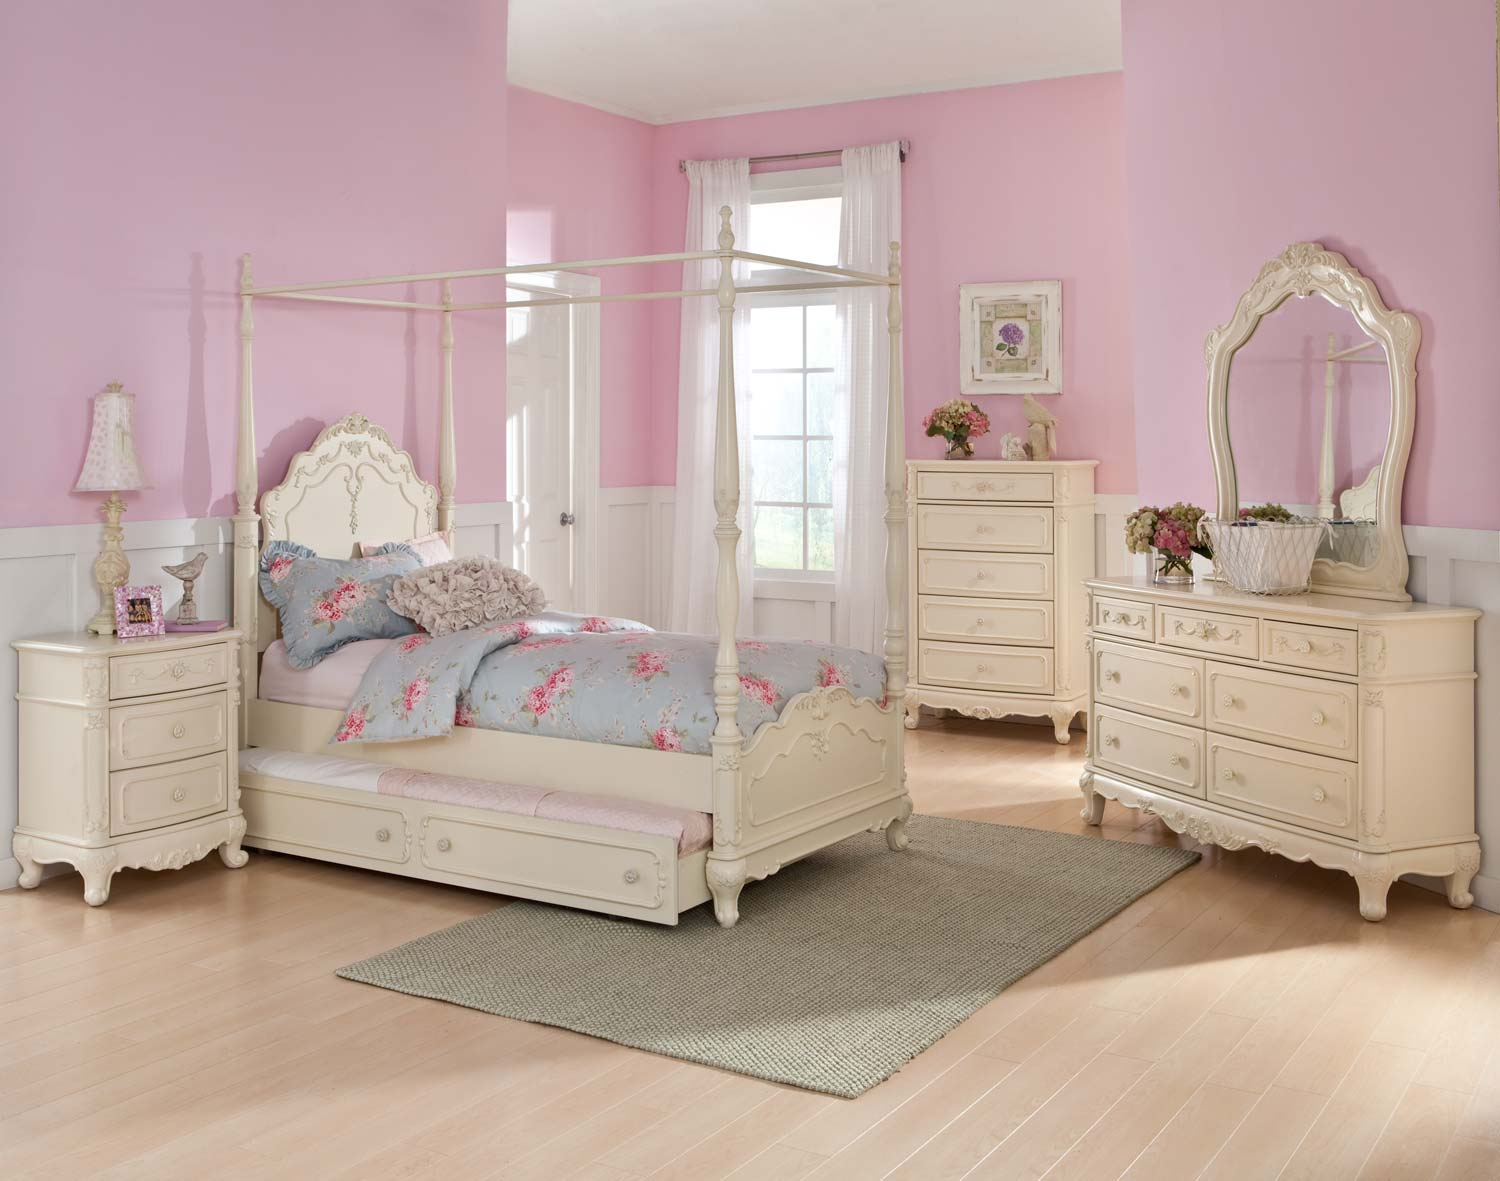 Homelegance cinderella full white 5pc canopy bedroom set for White full bedroom furniture